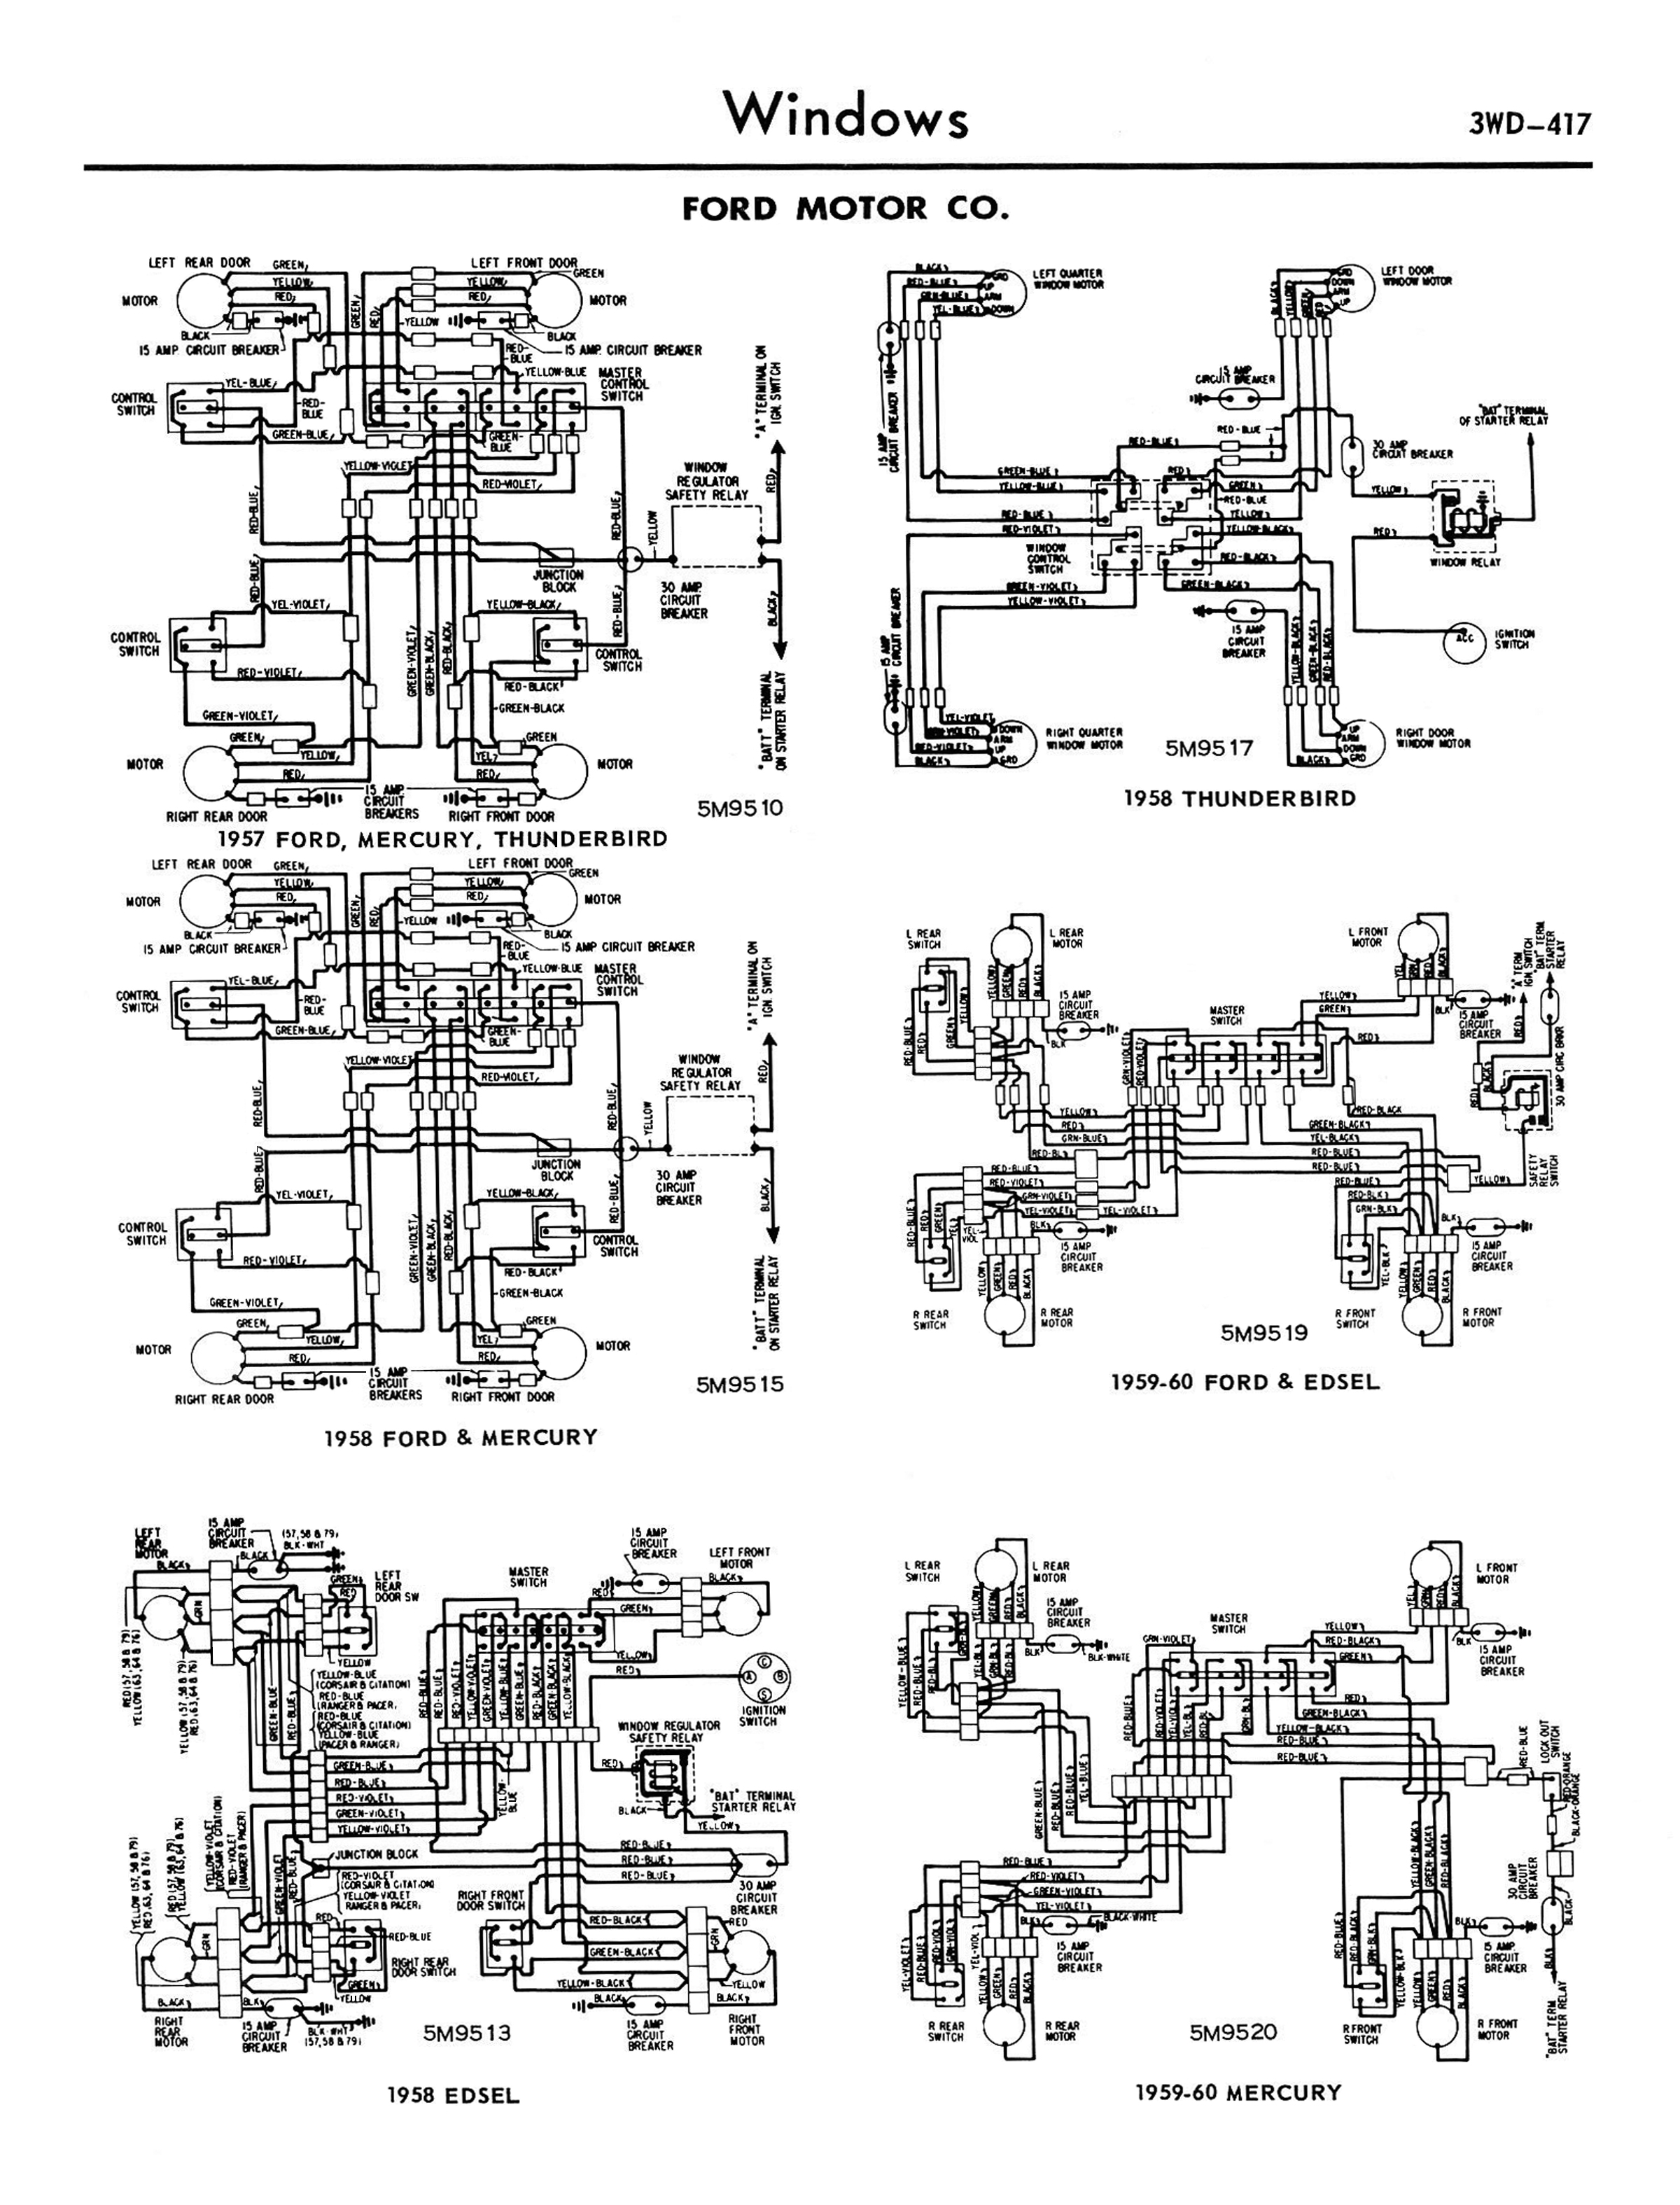 wiring diagram 68 chrysler new yorker